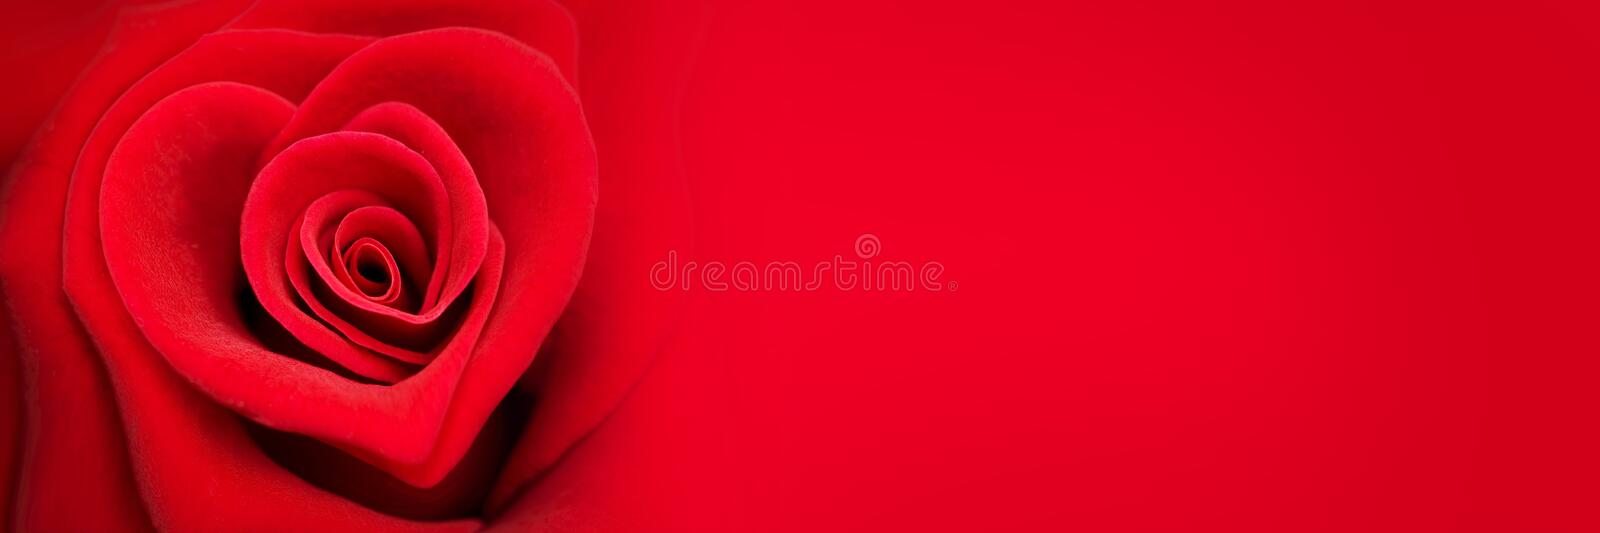 Red rose in the shape of a heart, valentines day banner stock photography